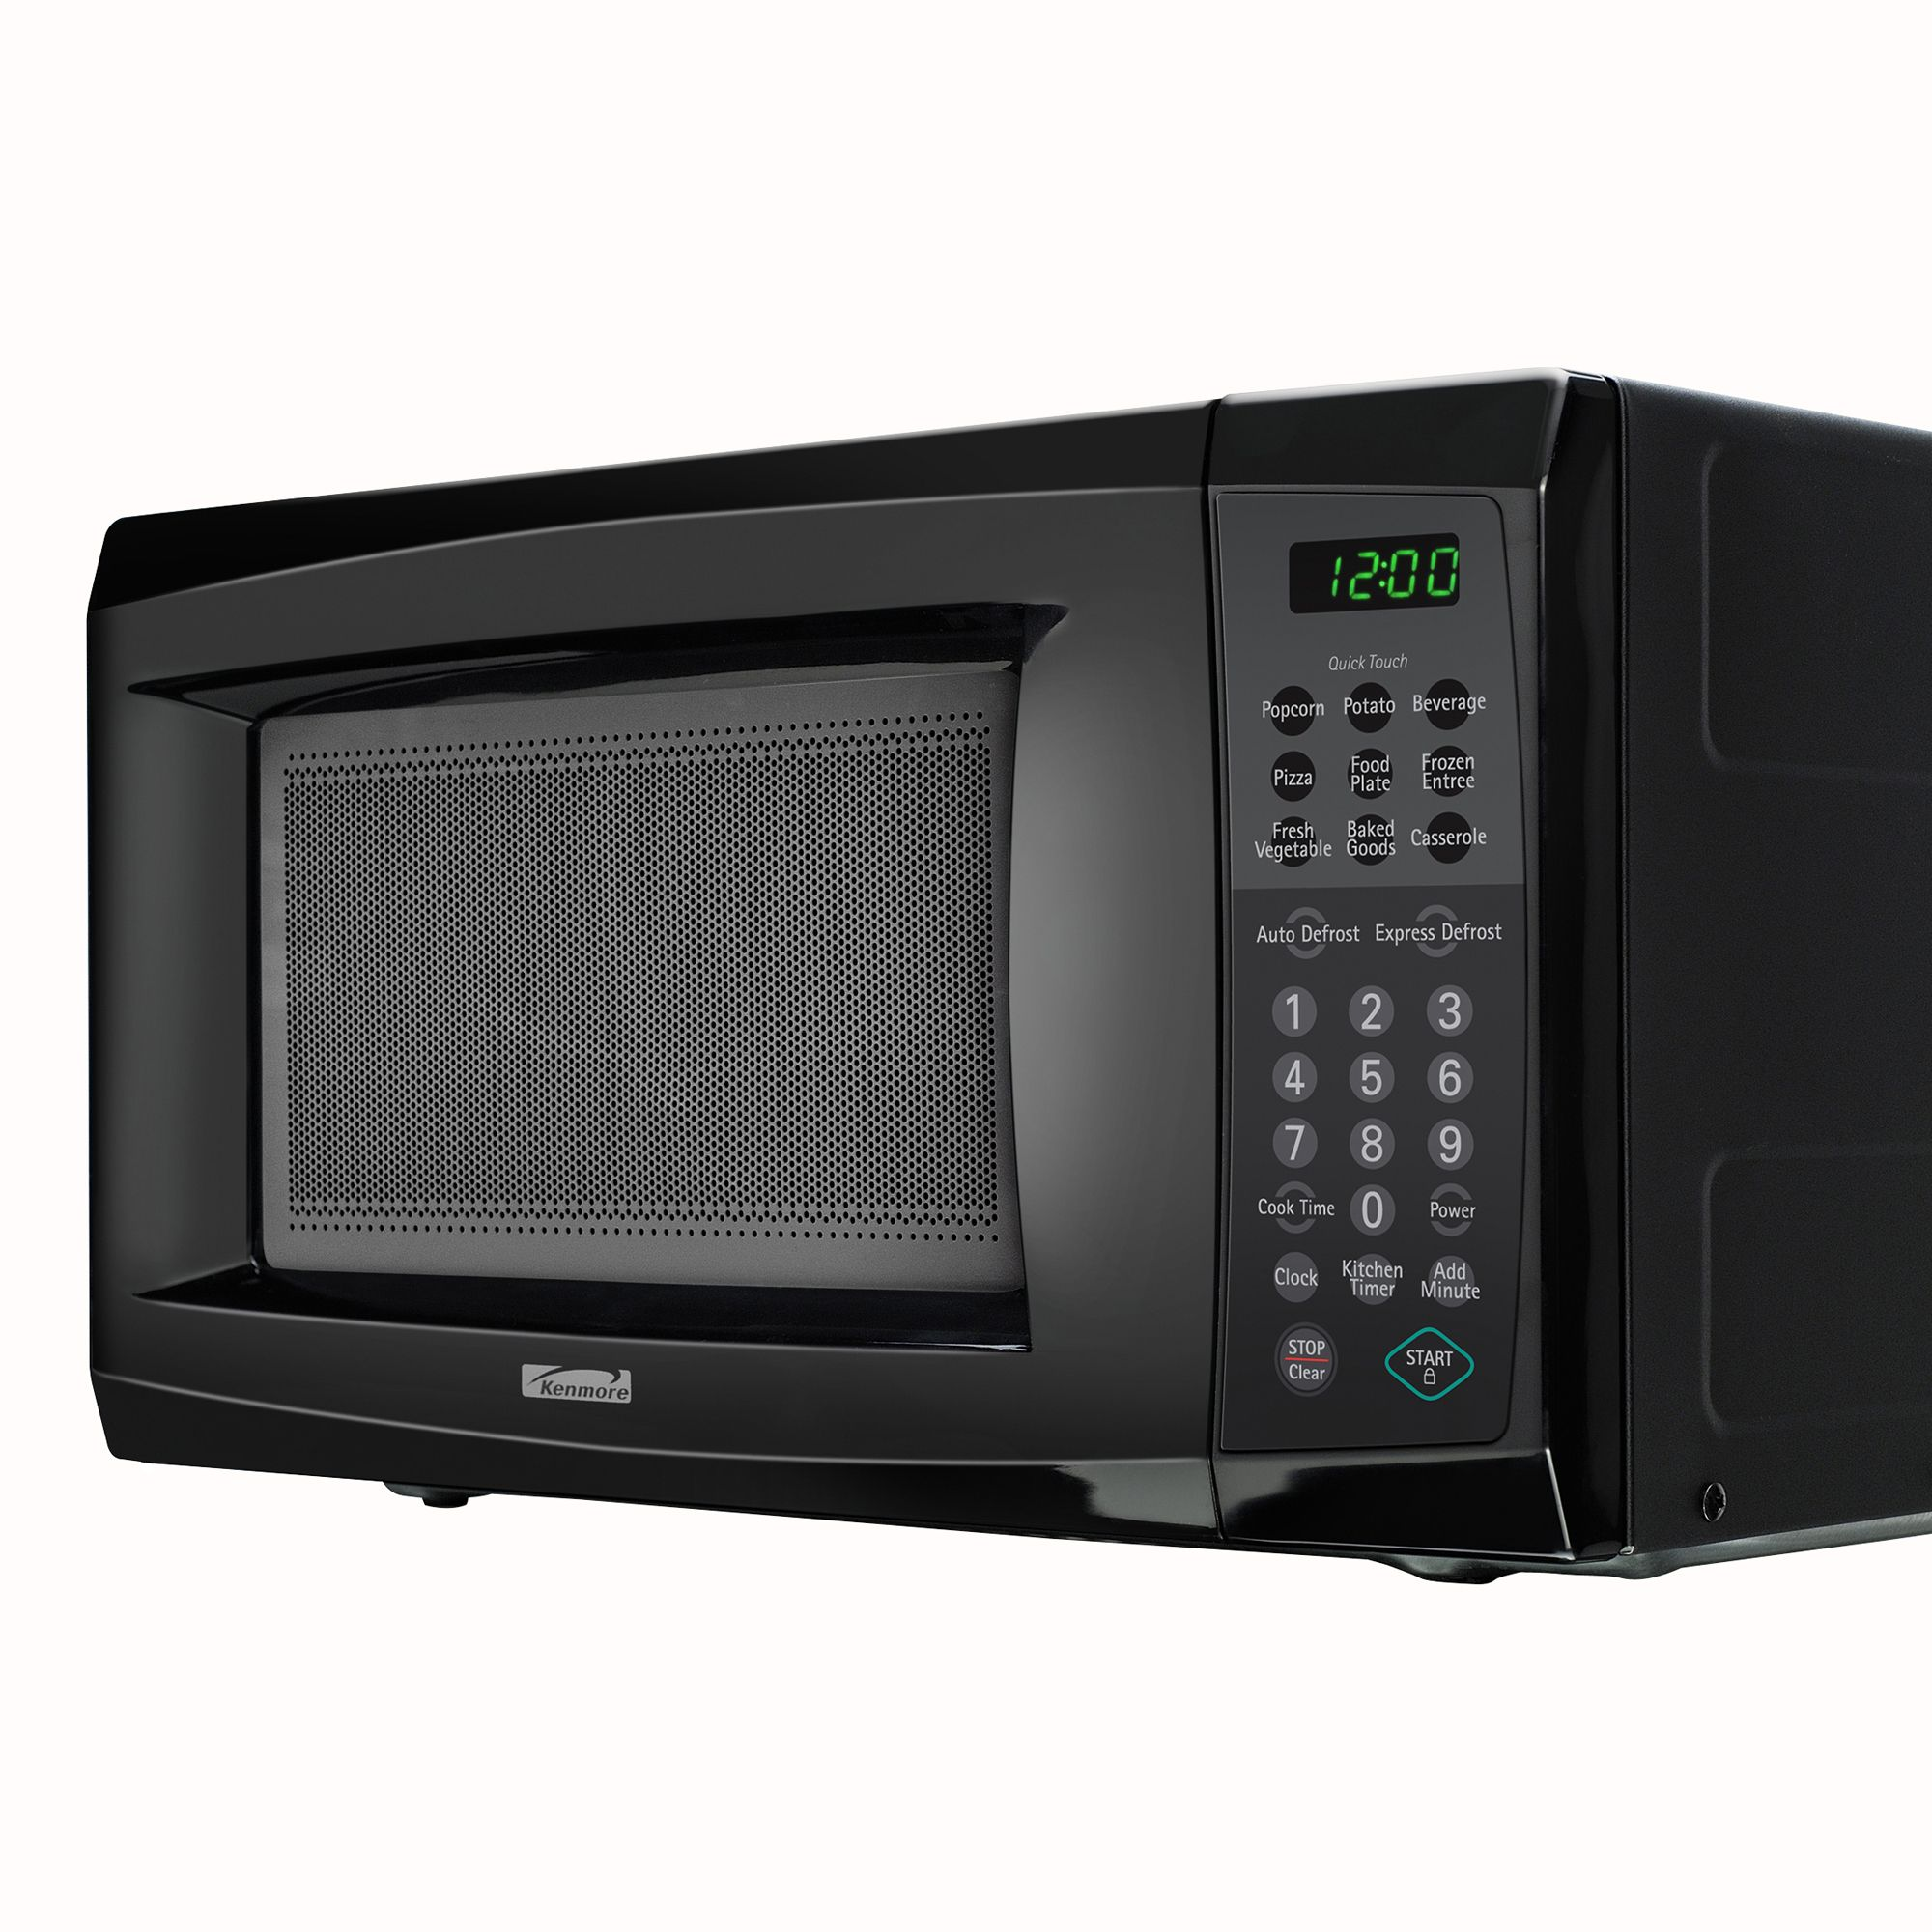 0-7-cu-ft-Countertop-Microwave-Oven-Black